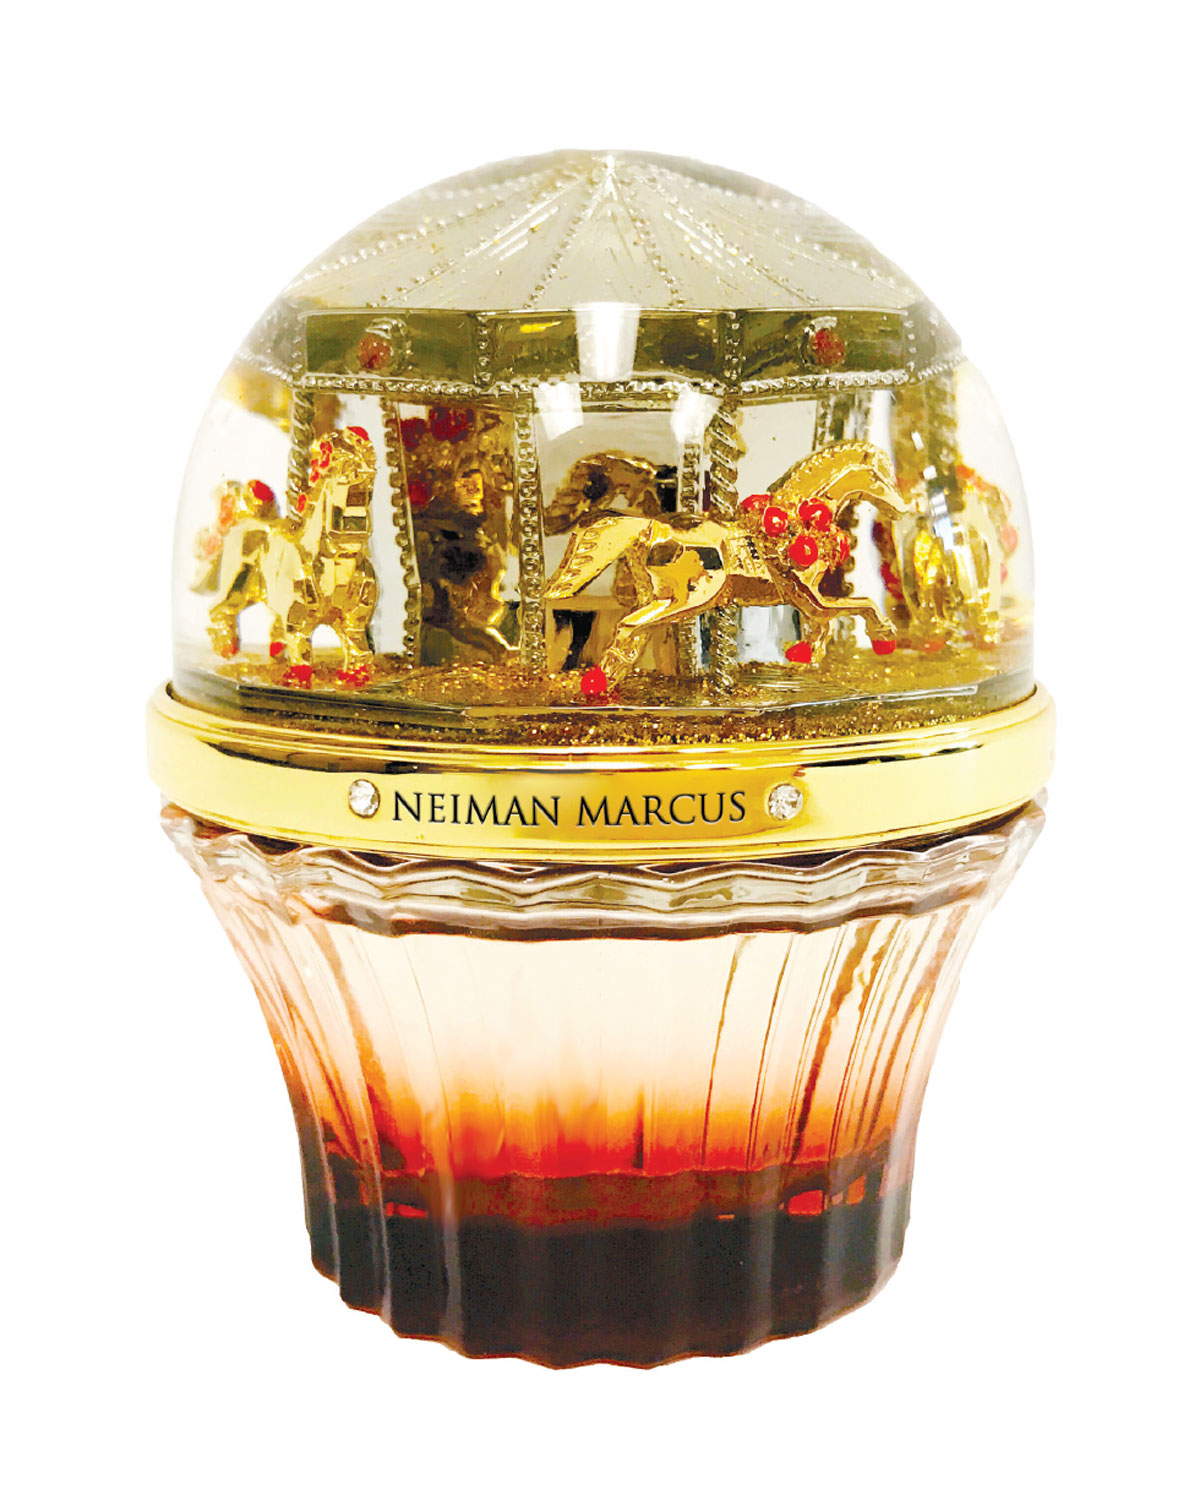 House of Sillage The Neiman Marcus Limited Edition Carousel ddd97722d163c